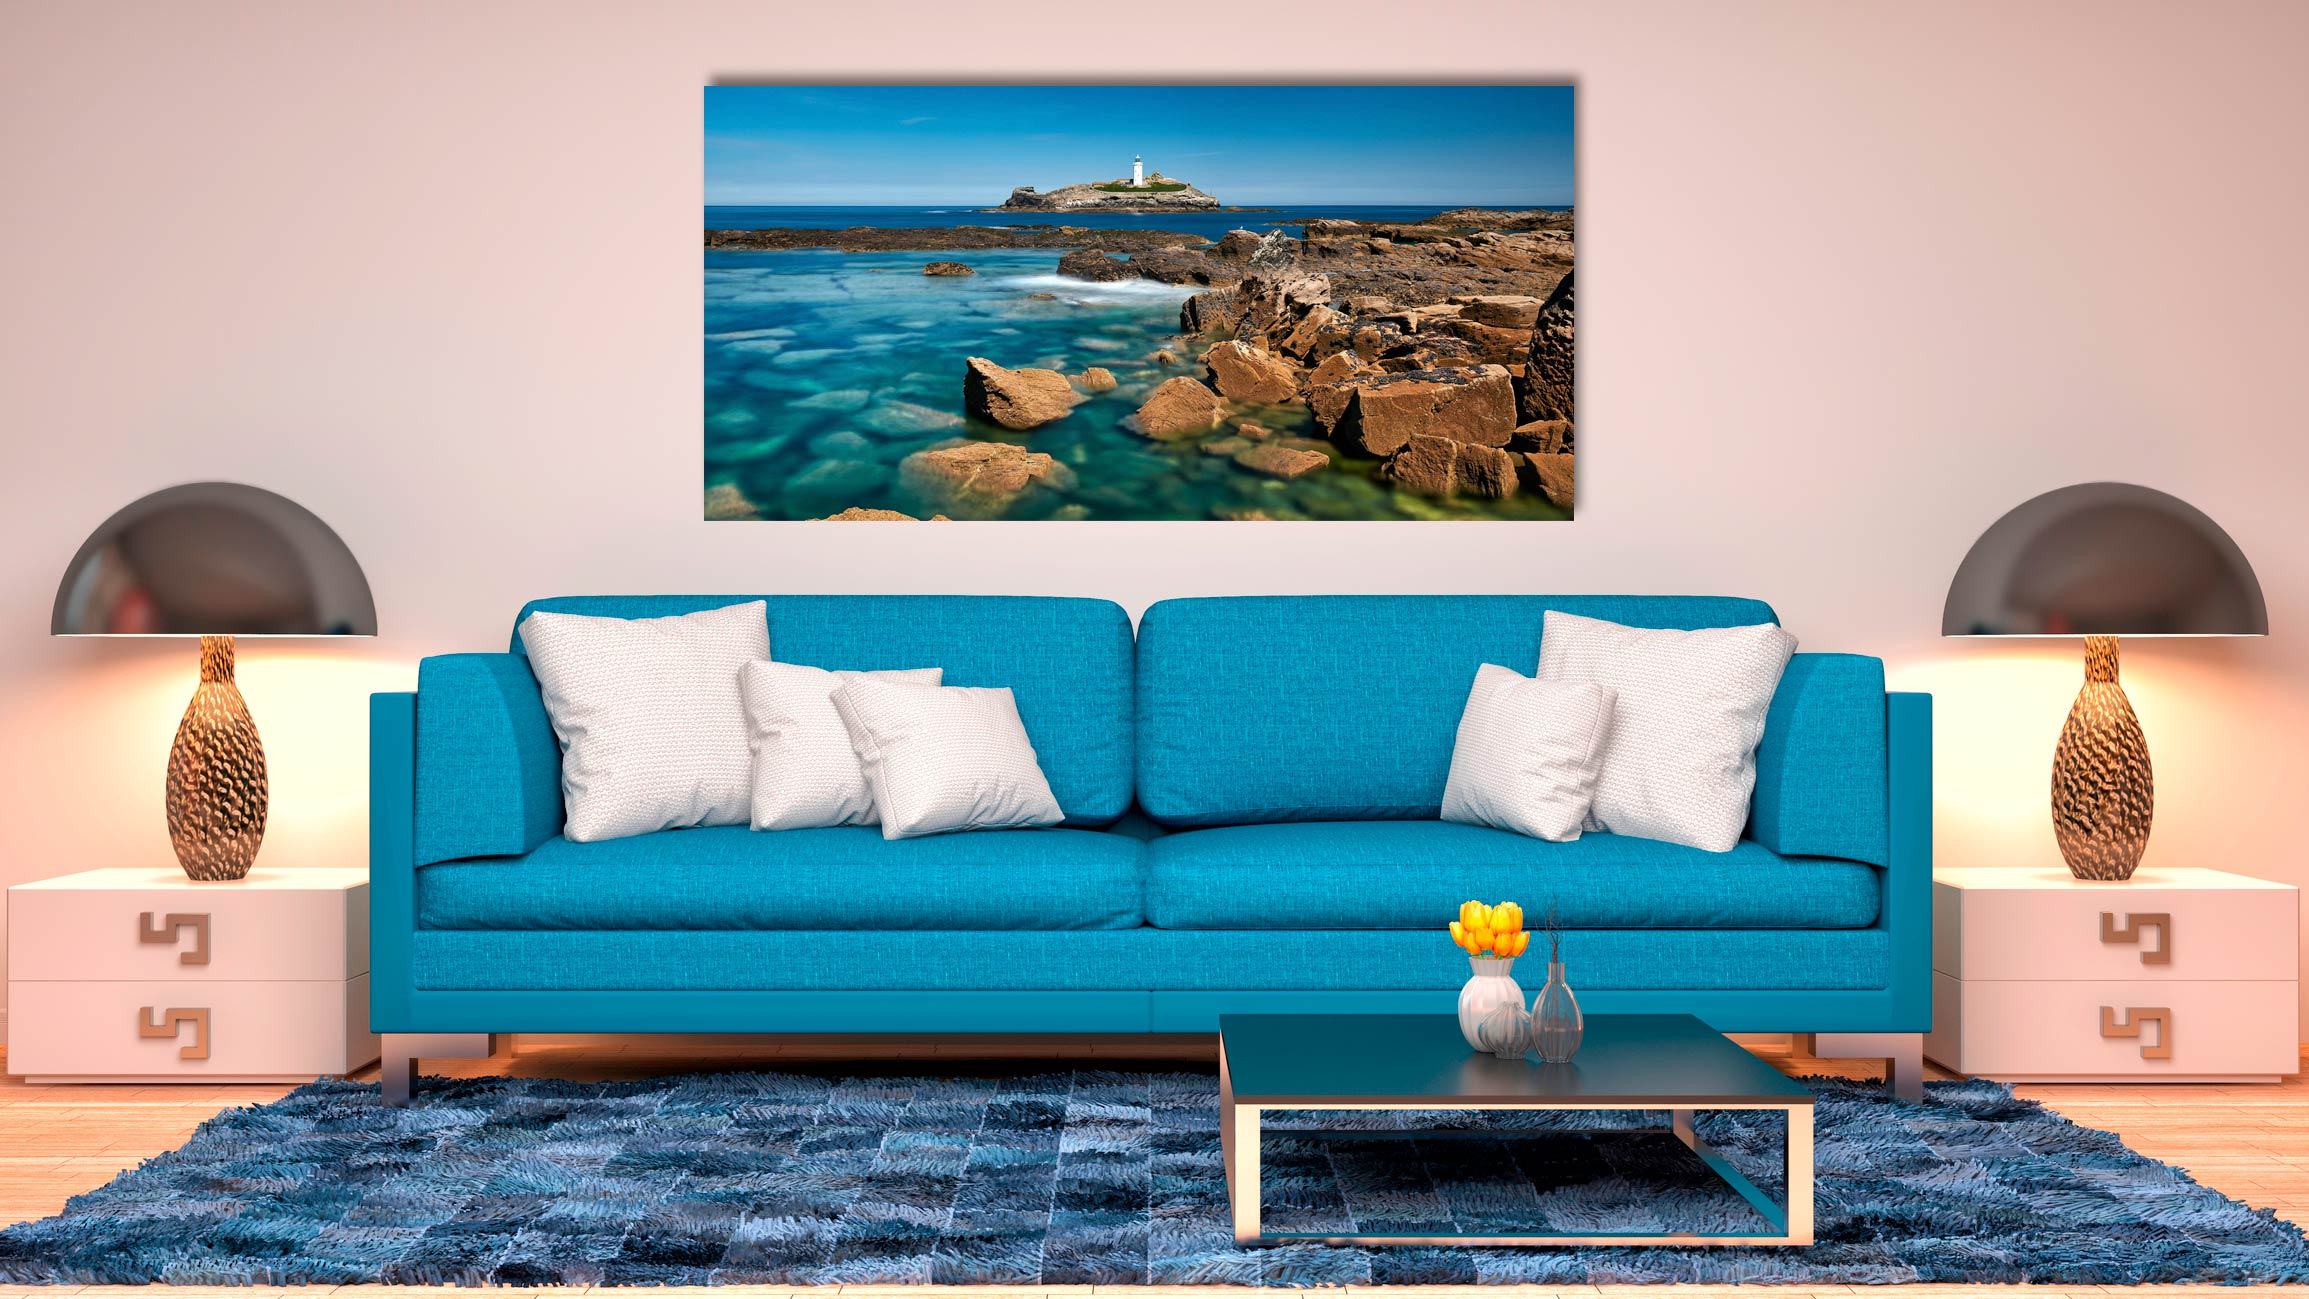 Calm Waters of Godrevy Point - Print Aluminium Backing With Acrylic Glazing on Wall